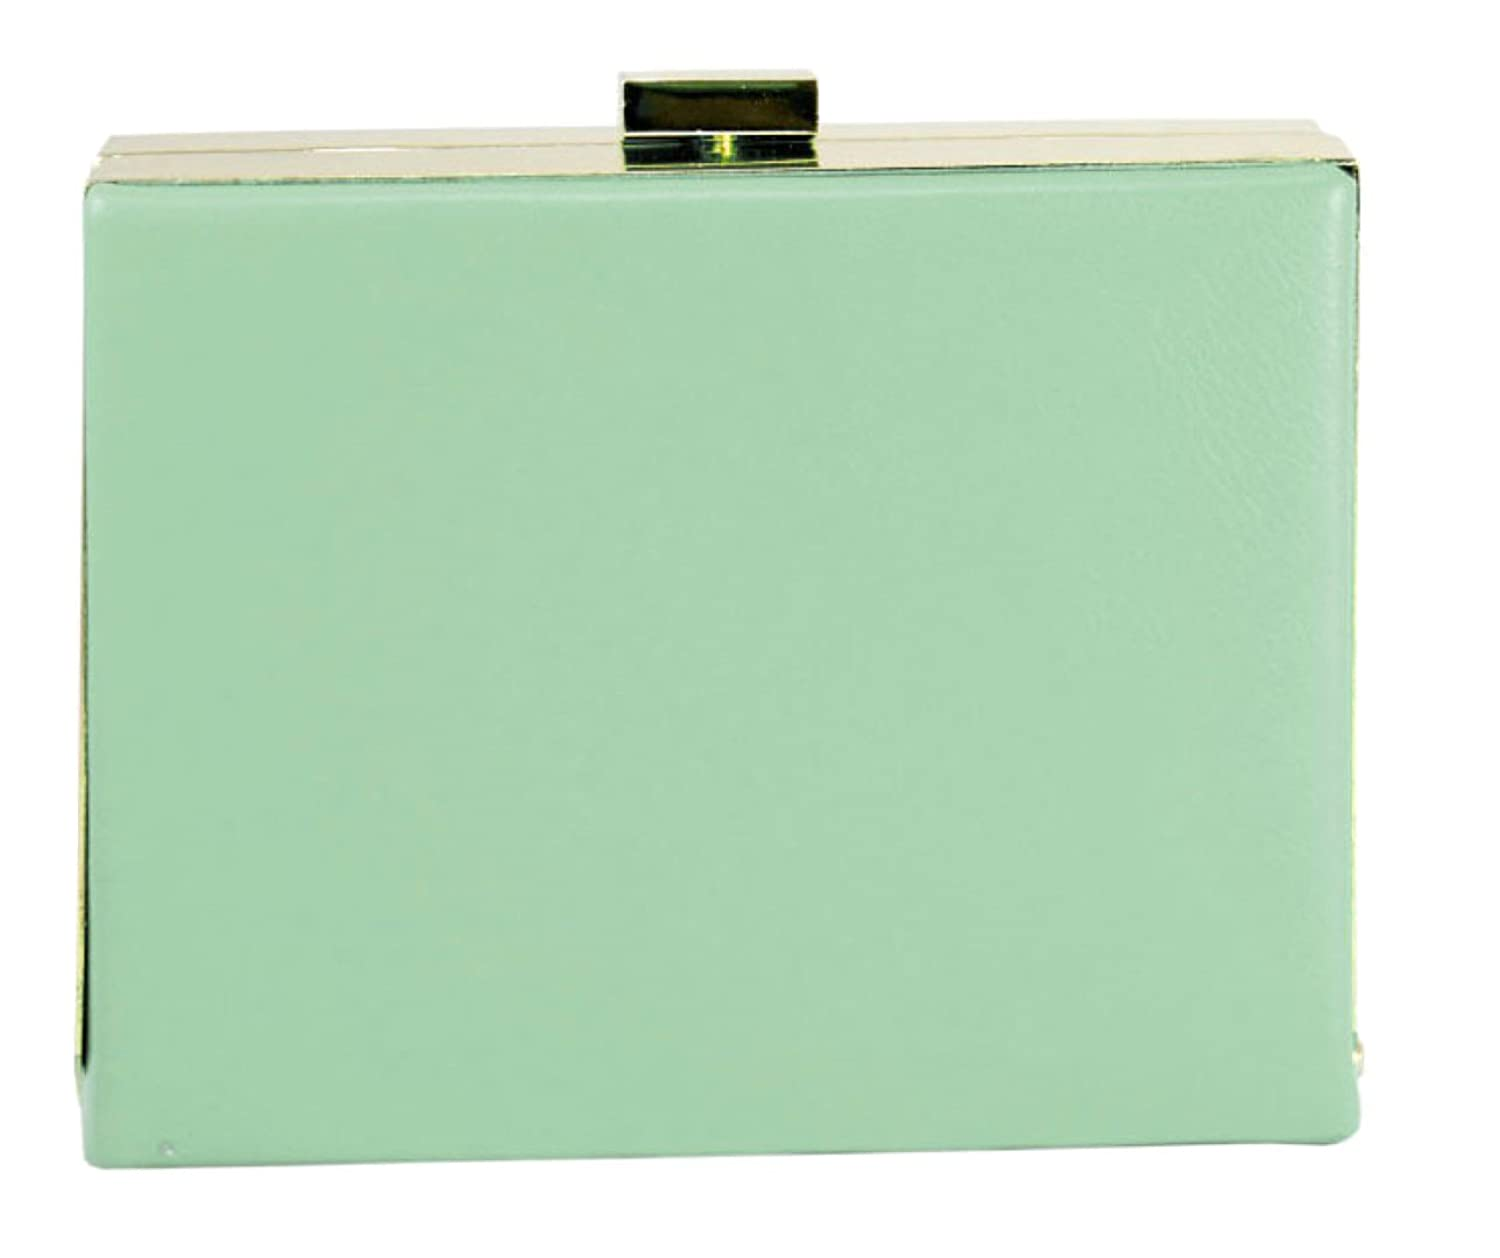 New Neon LYDC Box Clutch Bag Hard Case Evening Designer Leather Green Coral  Blue: Amazon.co.uk: Luggage